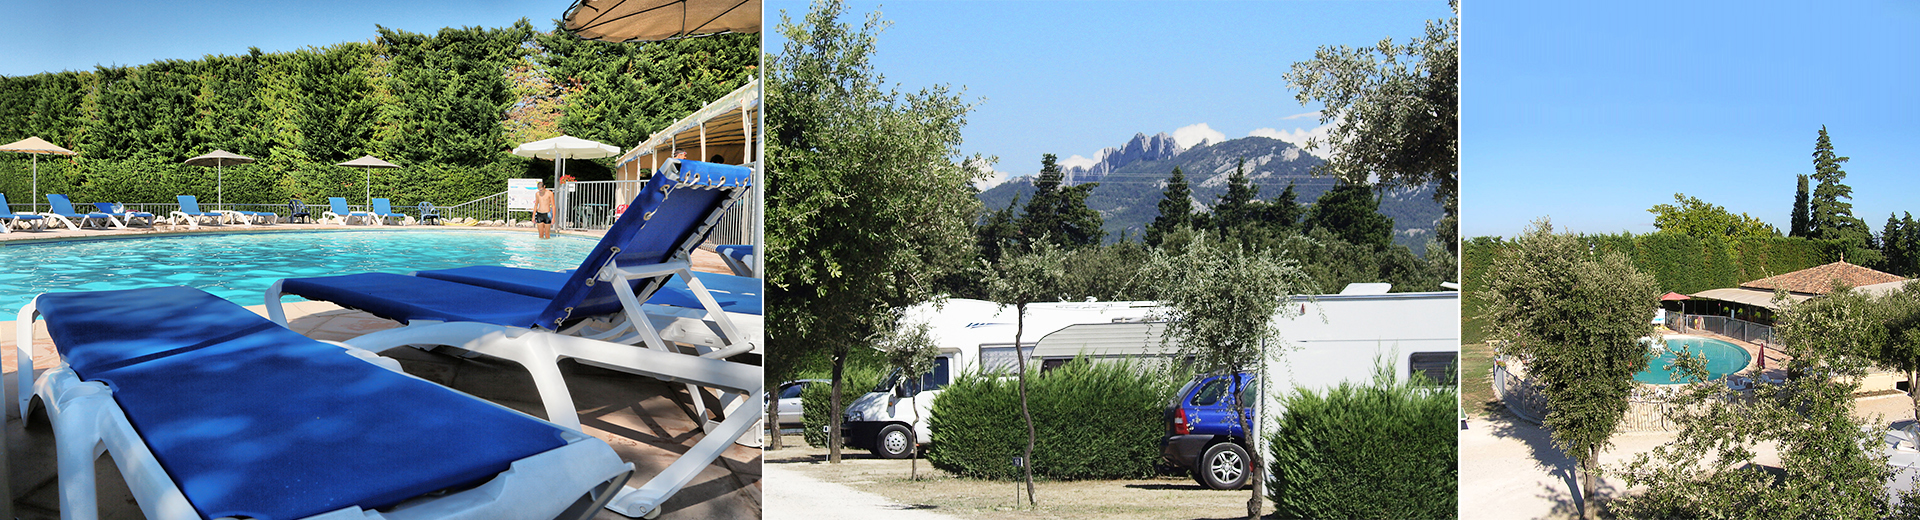 Camping en vaucluse le camping des favards situ viol s for Camping vaucluse piscine